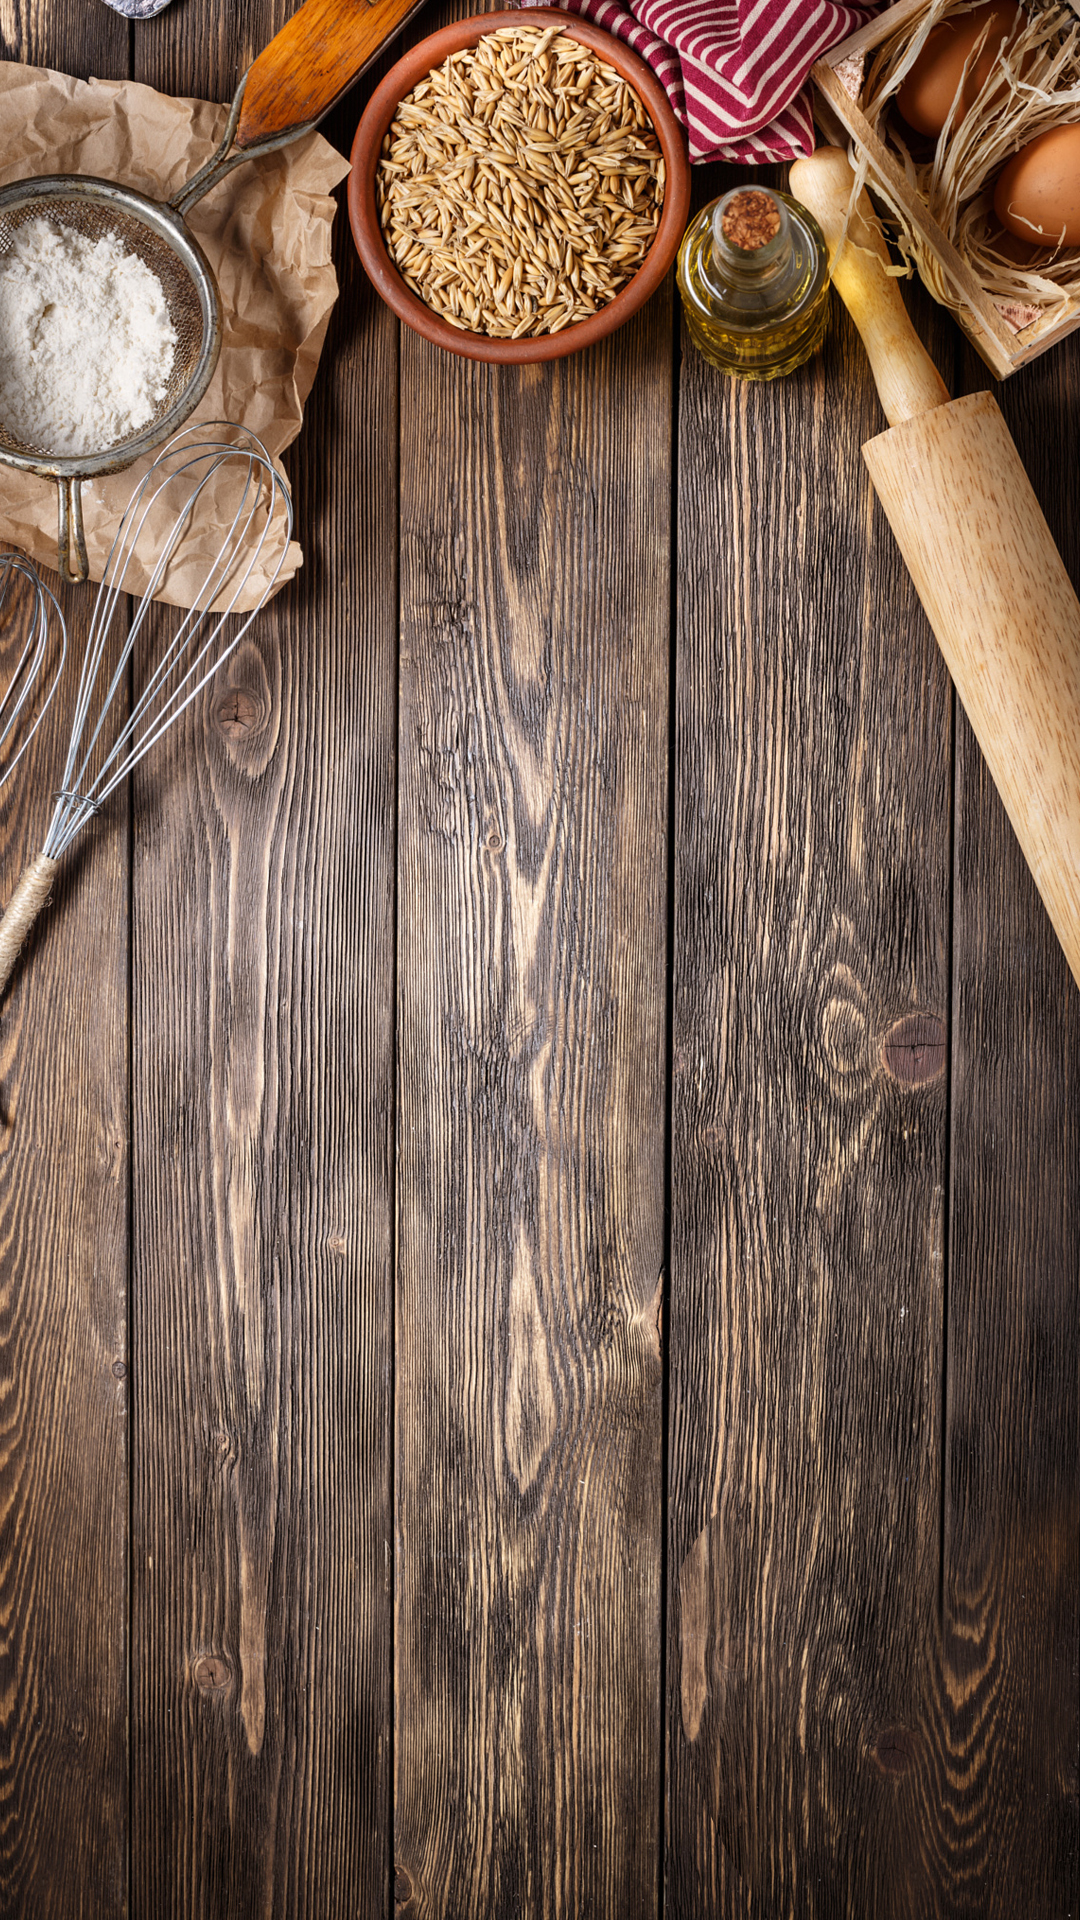 food wood plank background h5  food  board  wood background image for free download